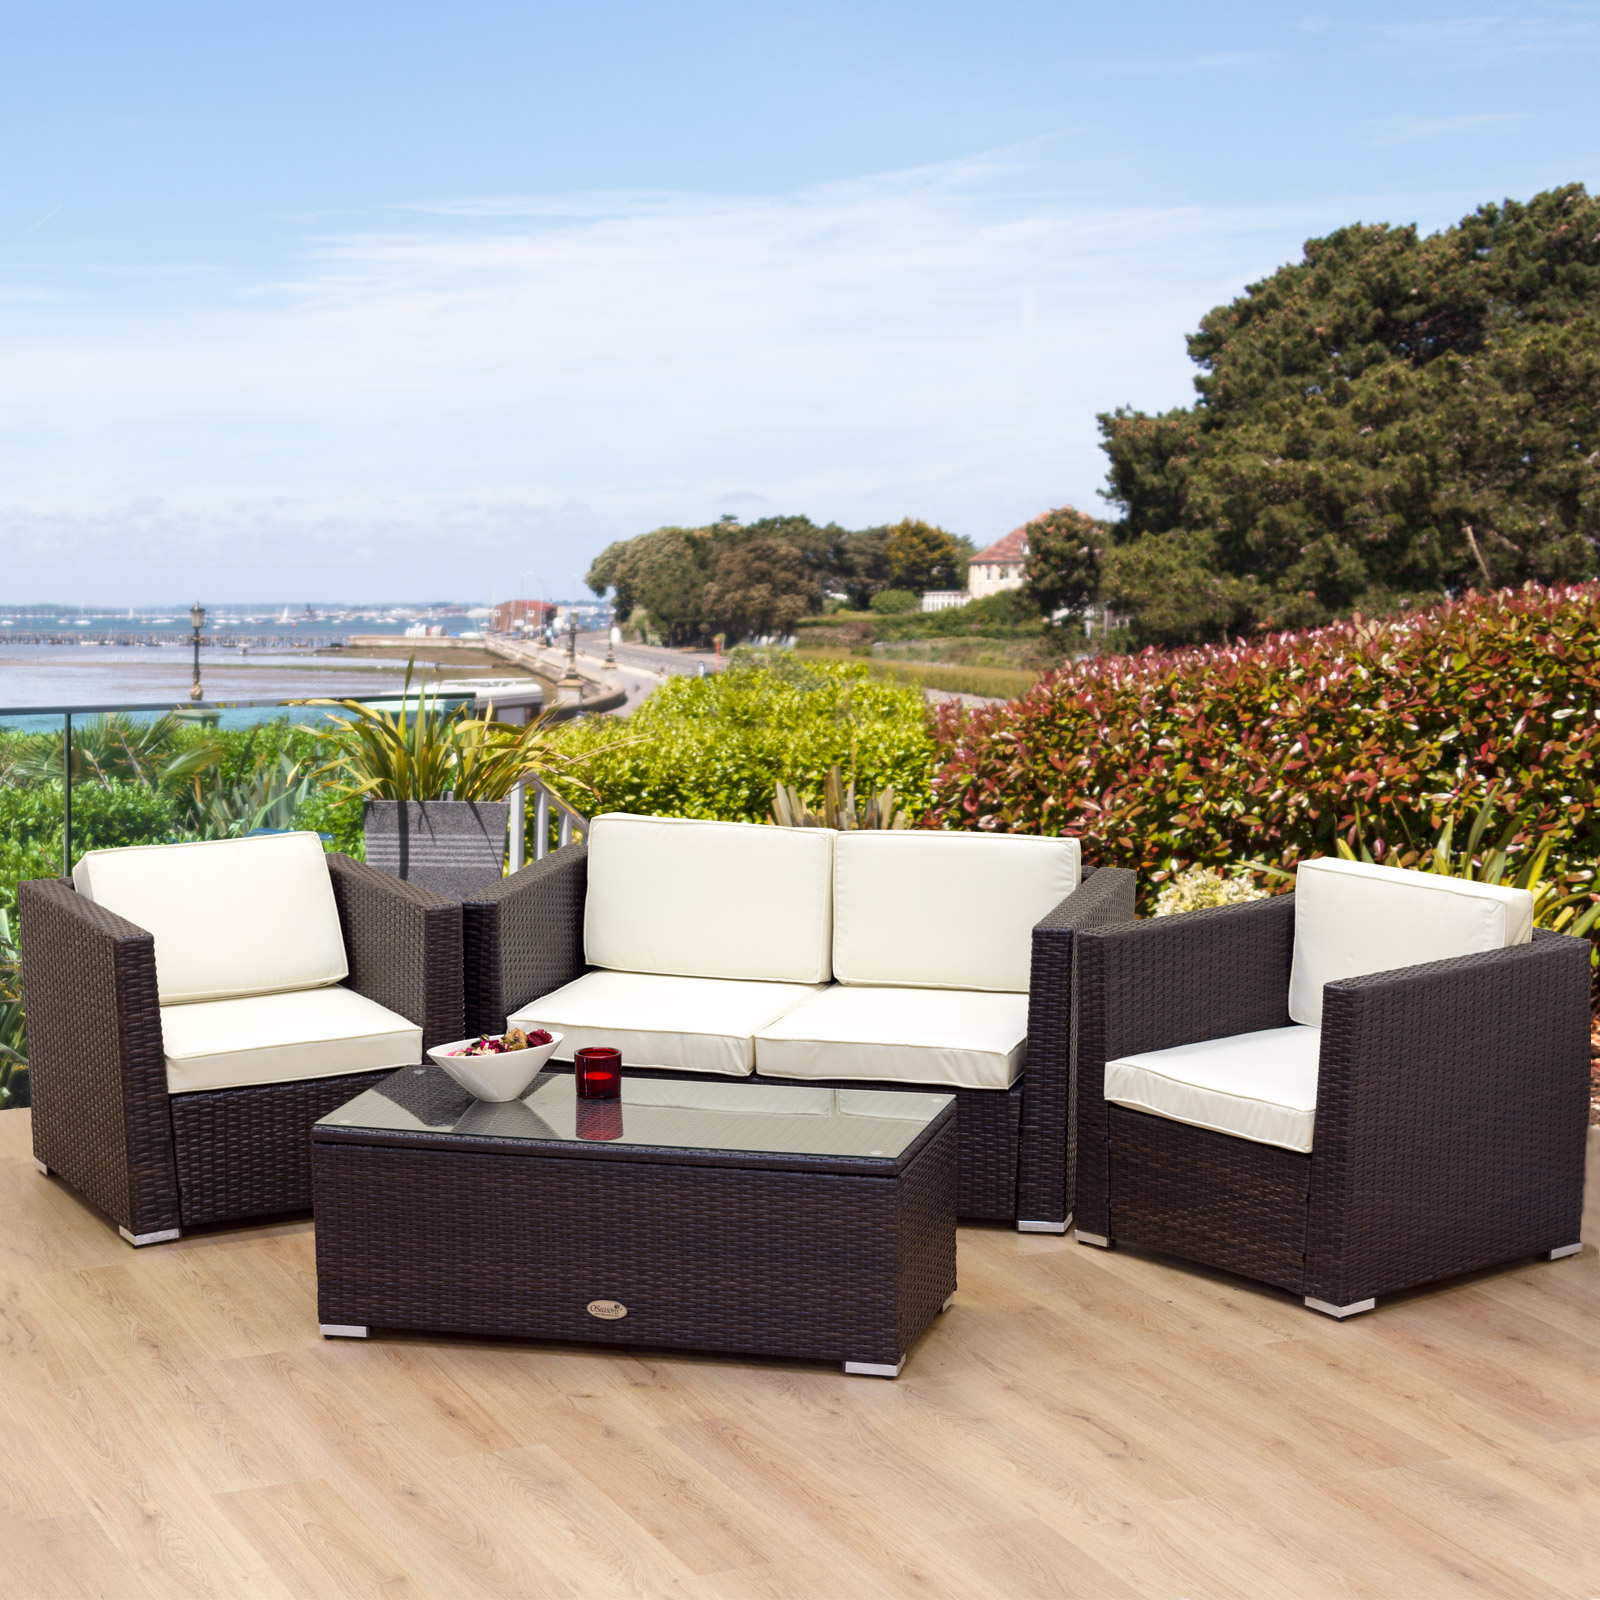 Awesome rattan garden furniture hgnv com - Muebles de rattan ...